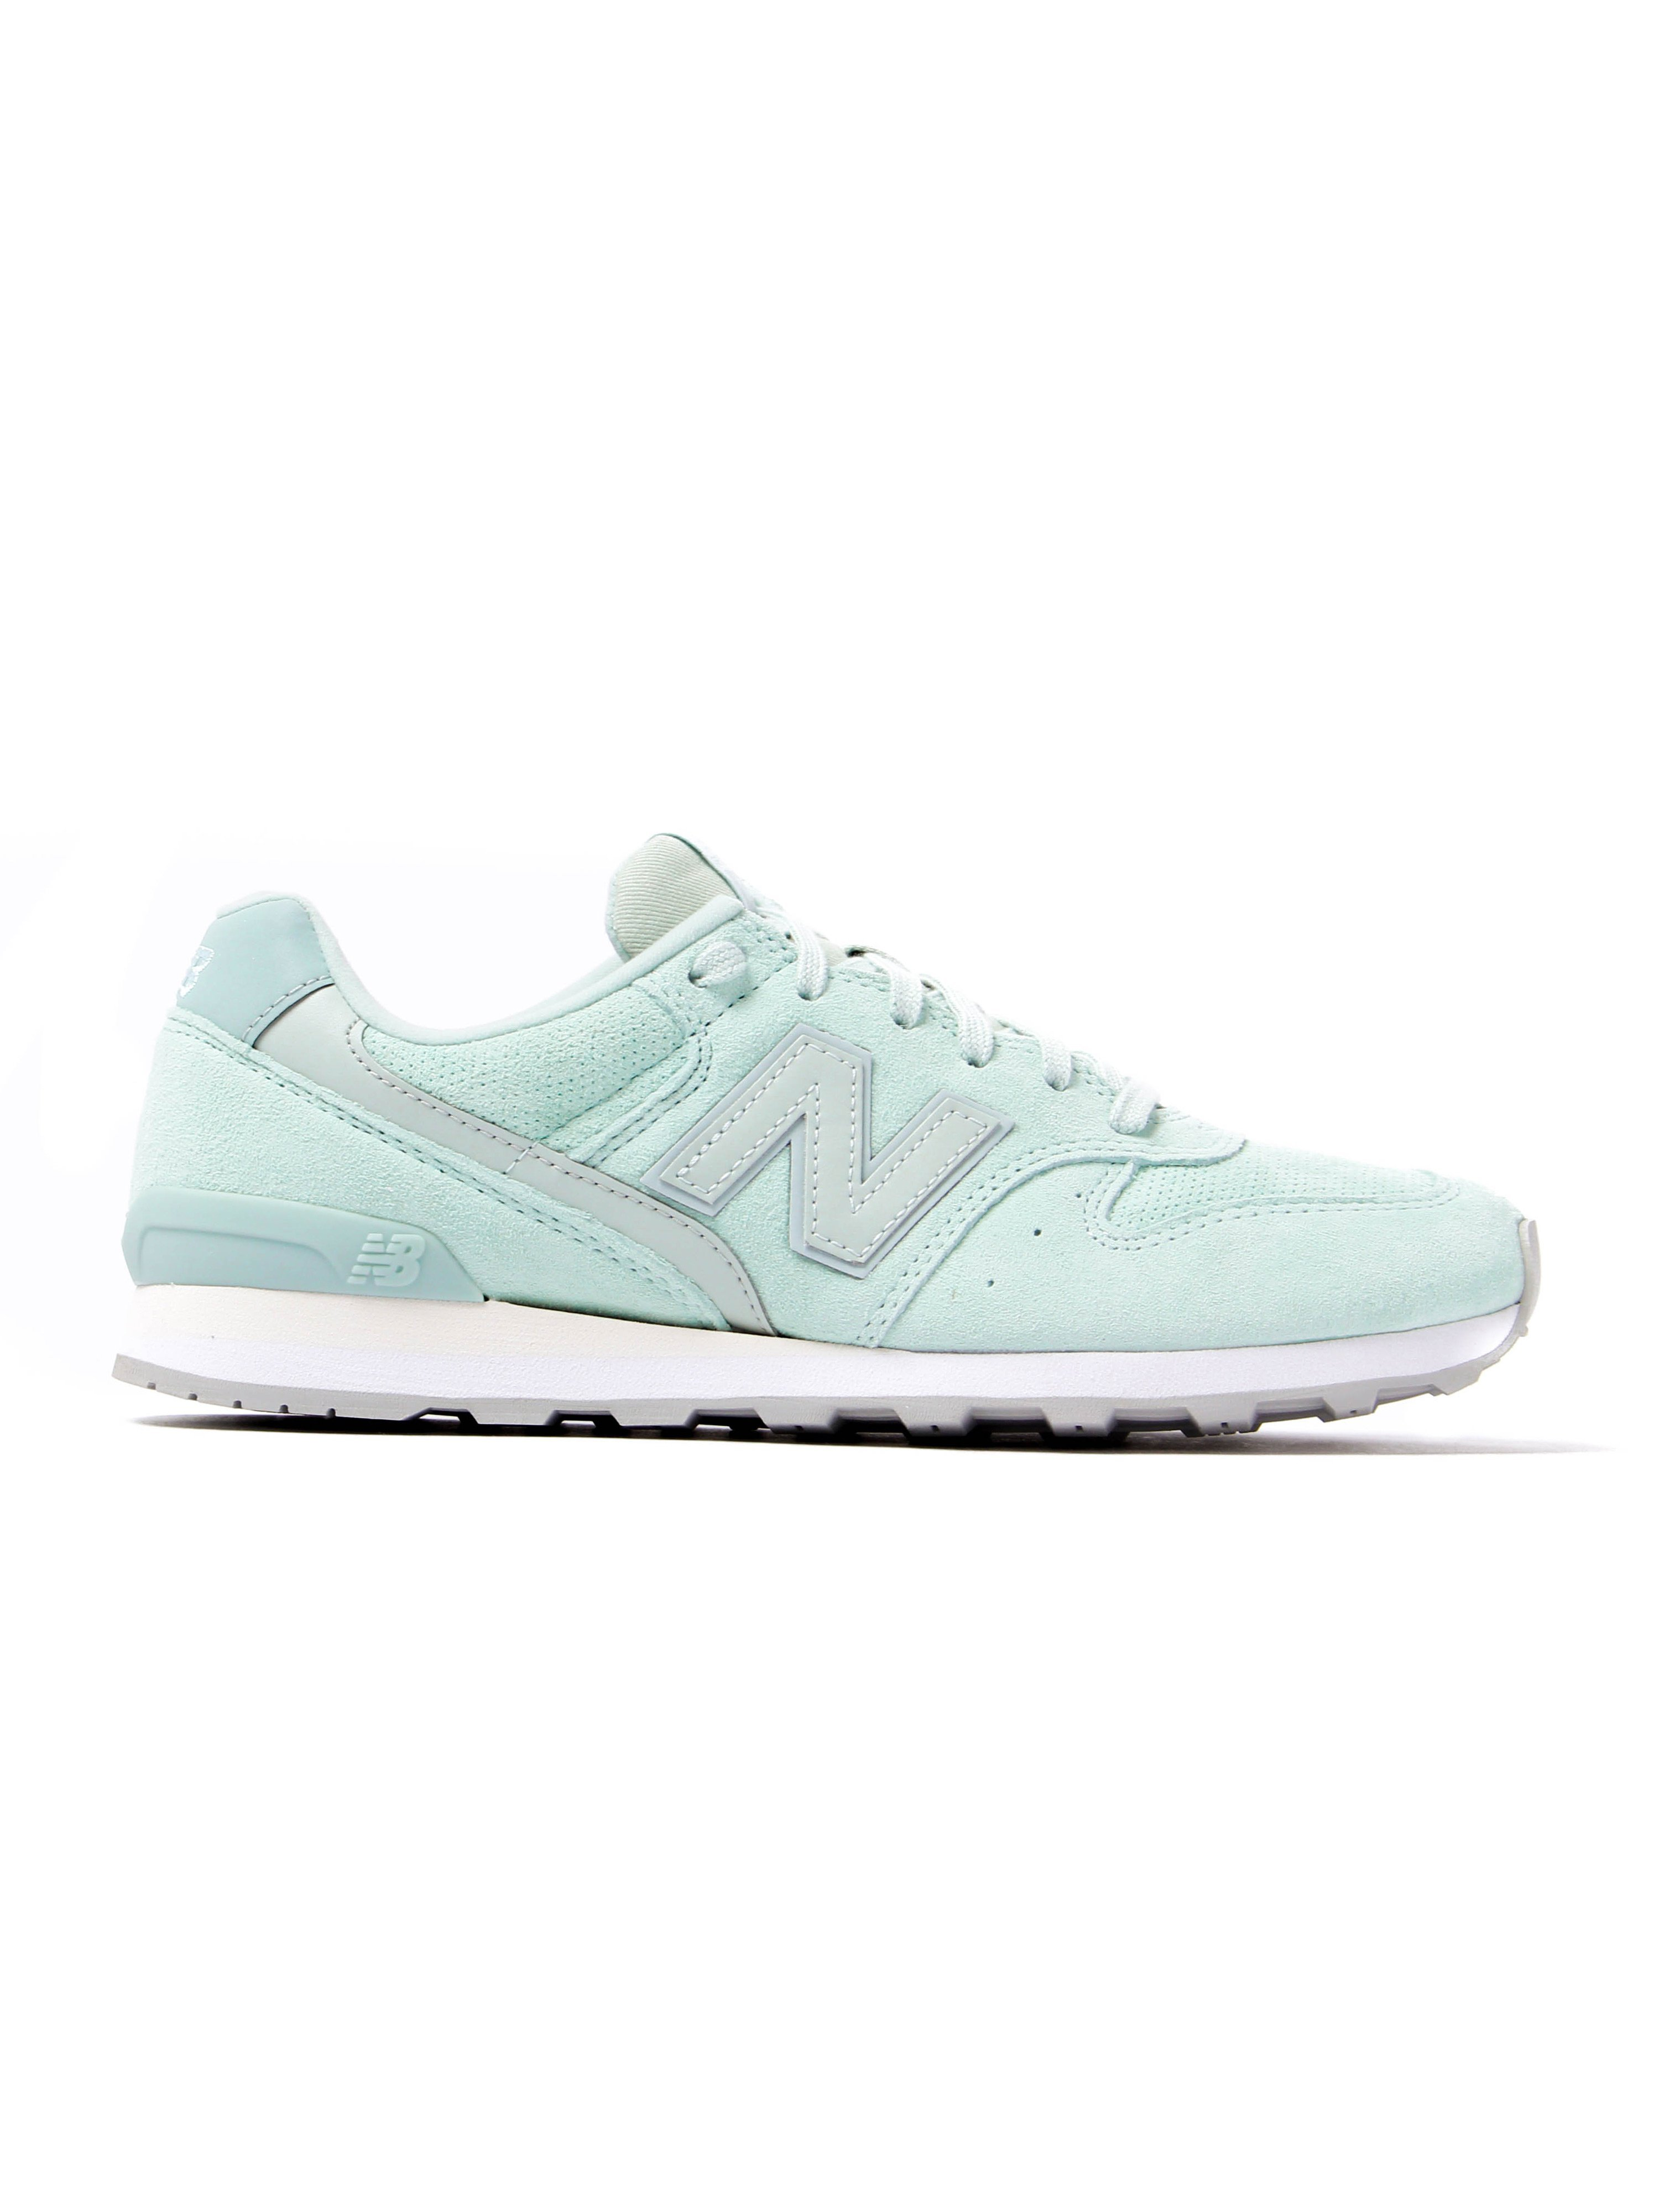 New Balance Women's 996 Trainers - Mint Green Suede